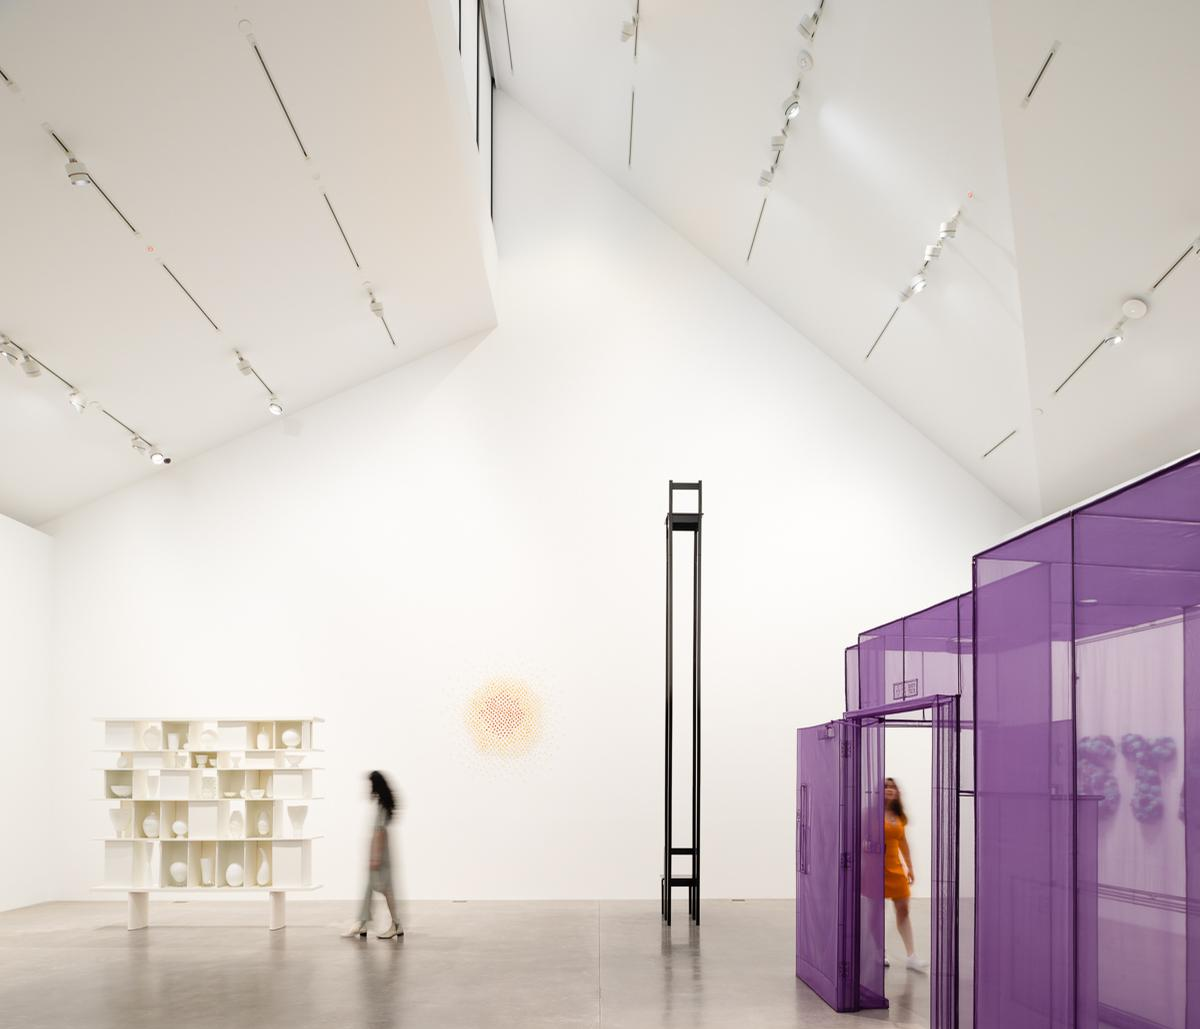 There are three main gallery spaces inside the building / Mark Menjivar